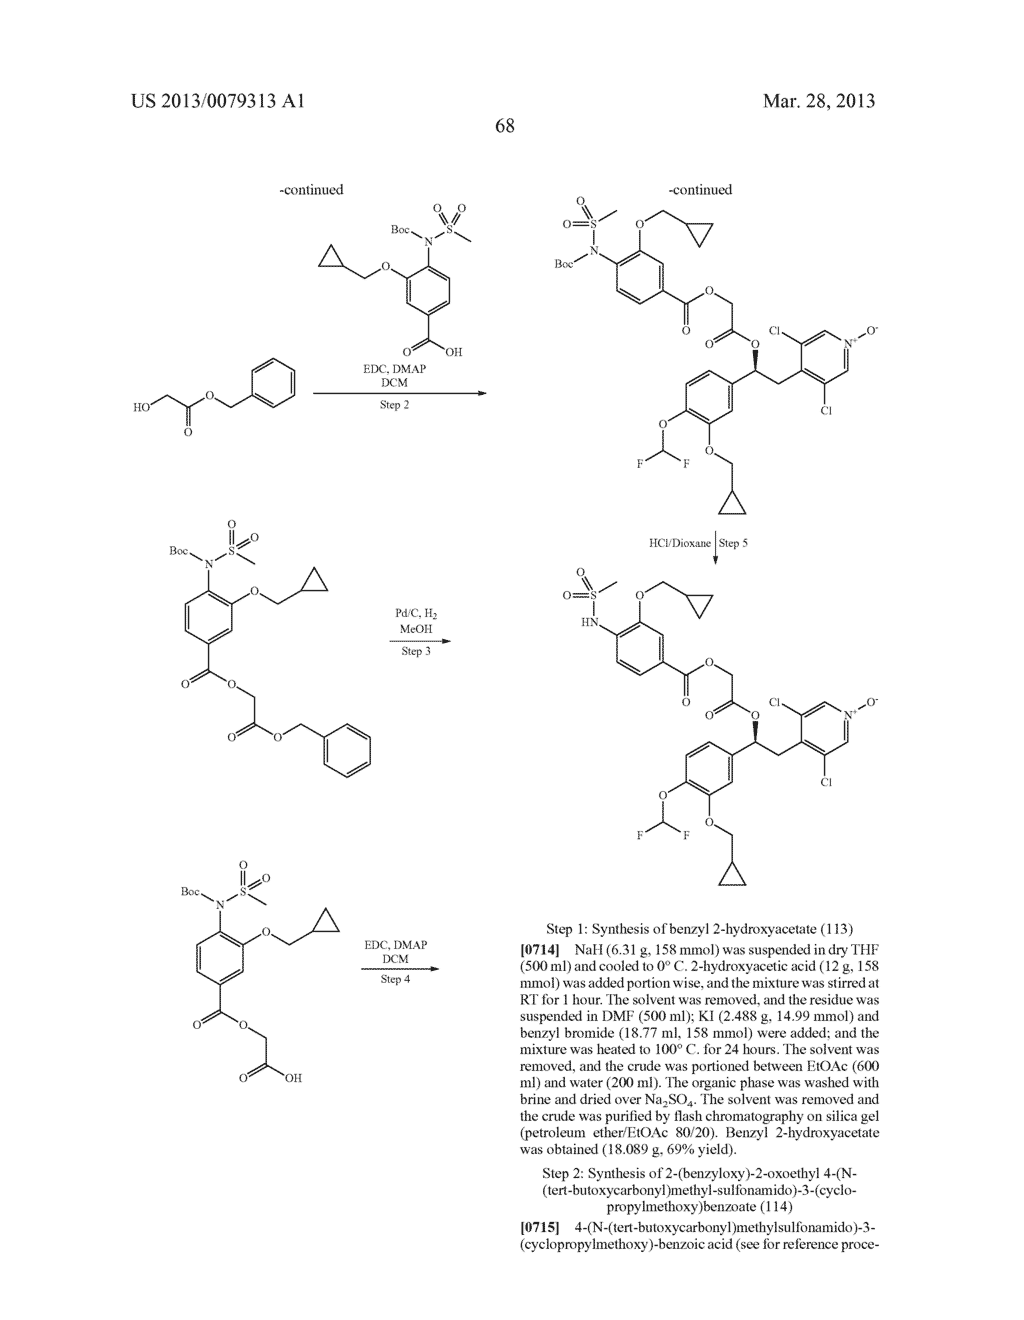 DERIVATIVES OF 1-PHENYL-2-PYRIDINYL ALKYL ALCOHOLS AS PHOSPHODIESTERASE     INHIBITORS - diagram, schematic, and image 69